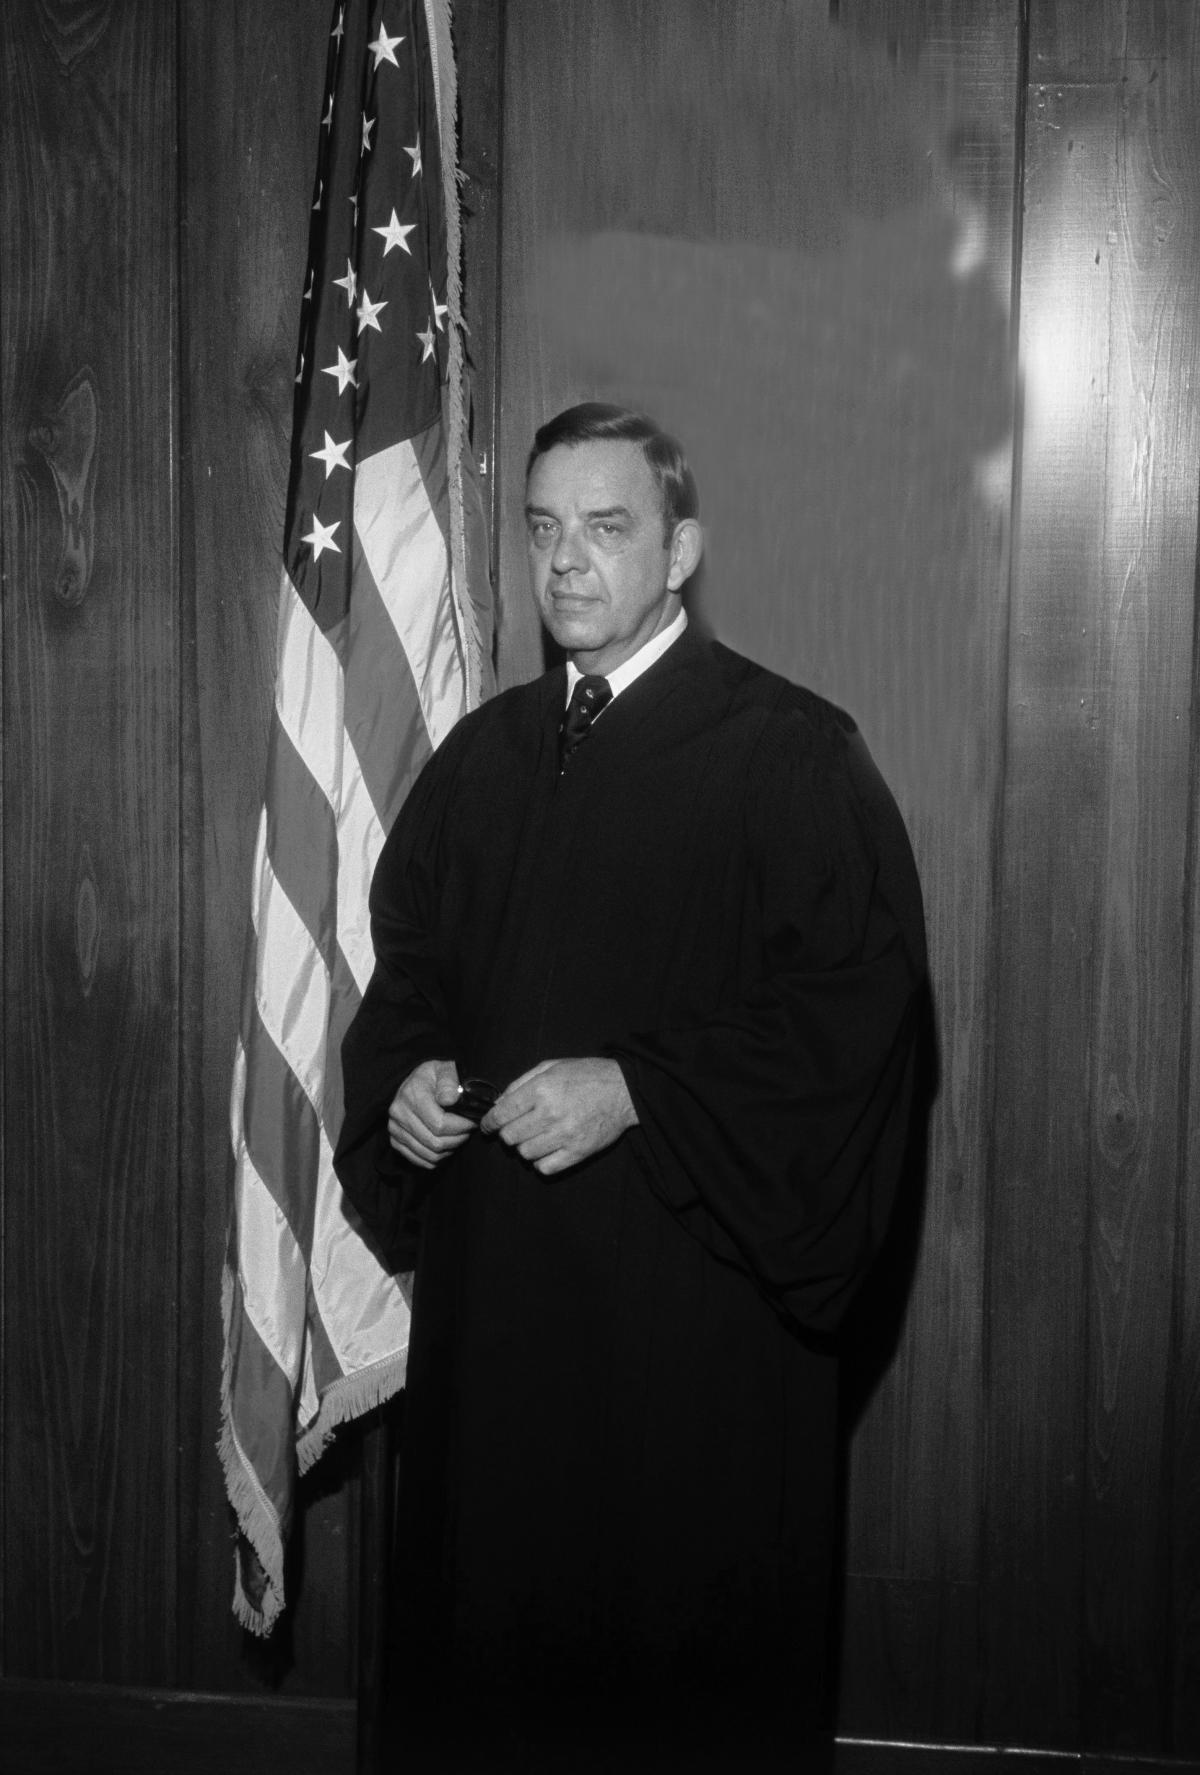 Carswell wearing judge's robes, standing in front of the American flag